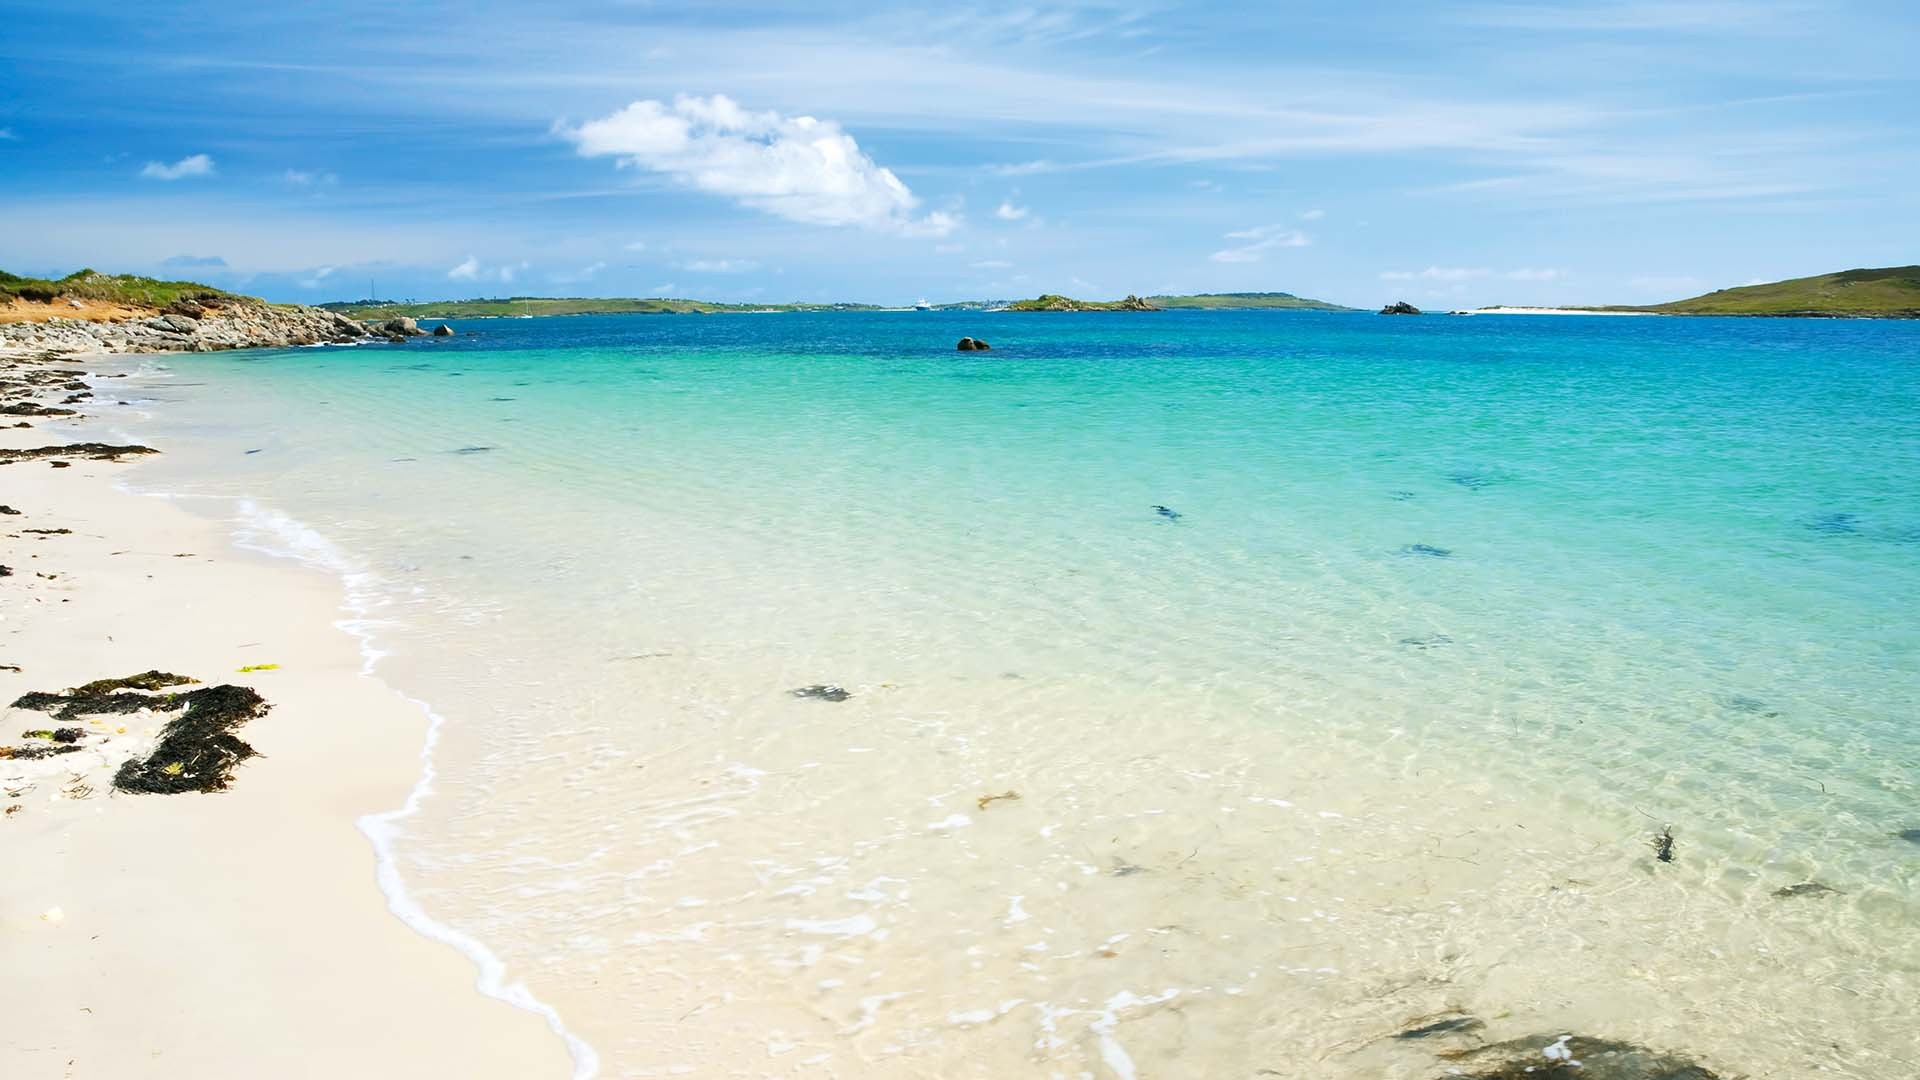 Rushy Bay, Bryher, Isles of Scilly, UK